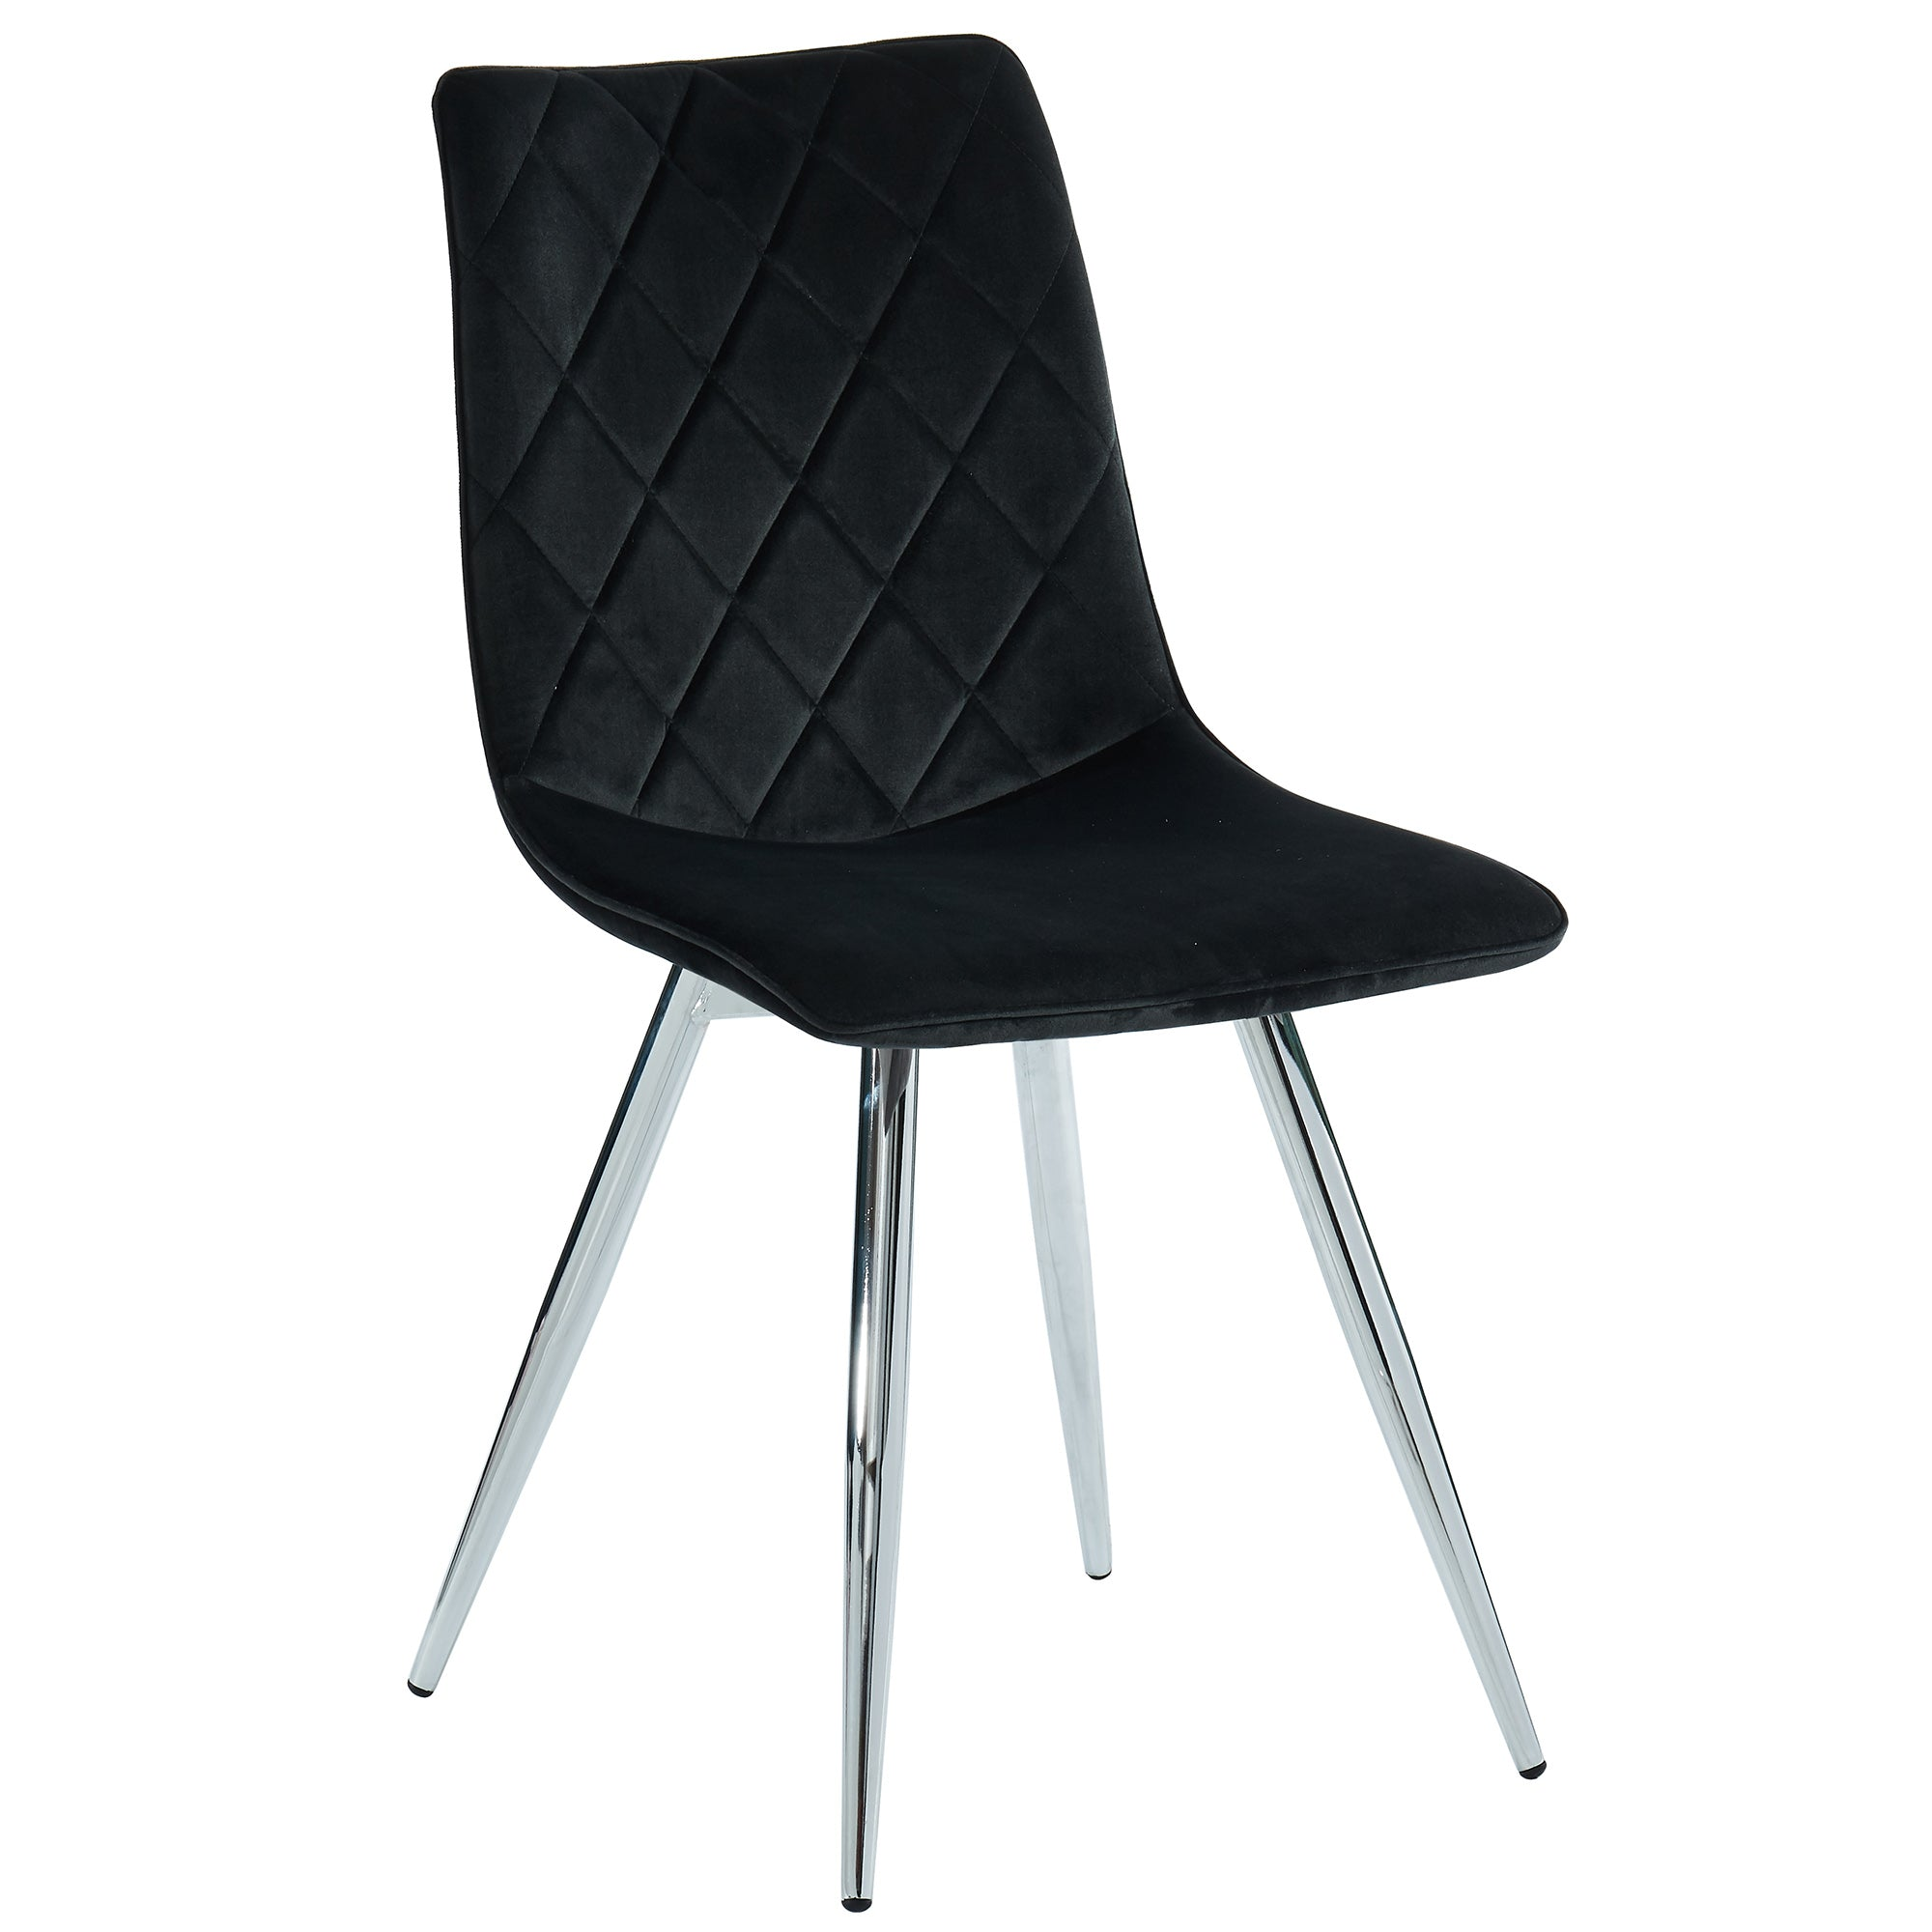 Marlo Dining Chair - Black